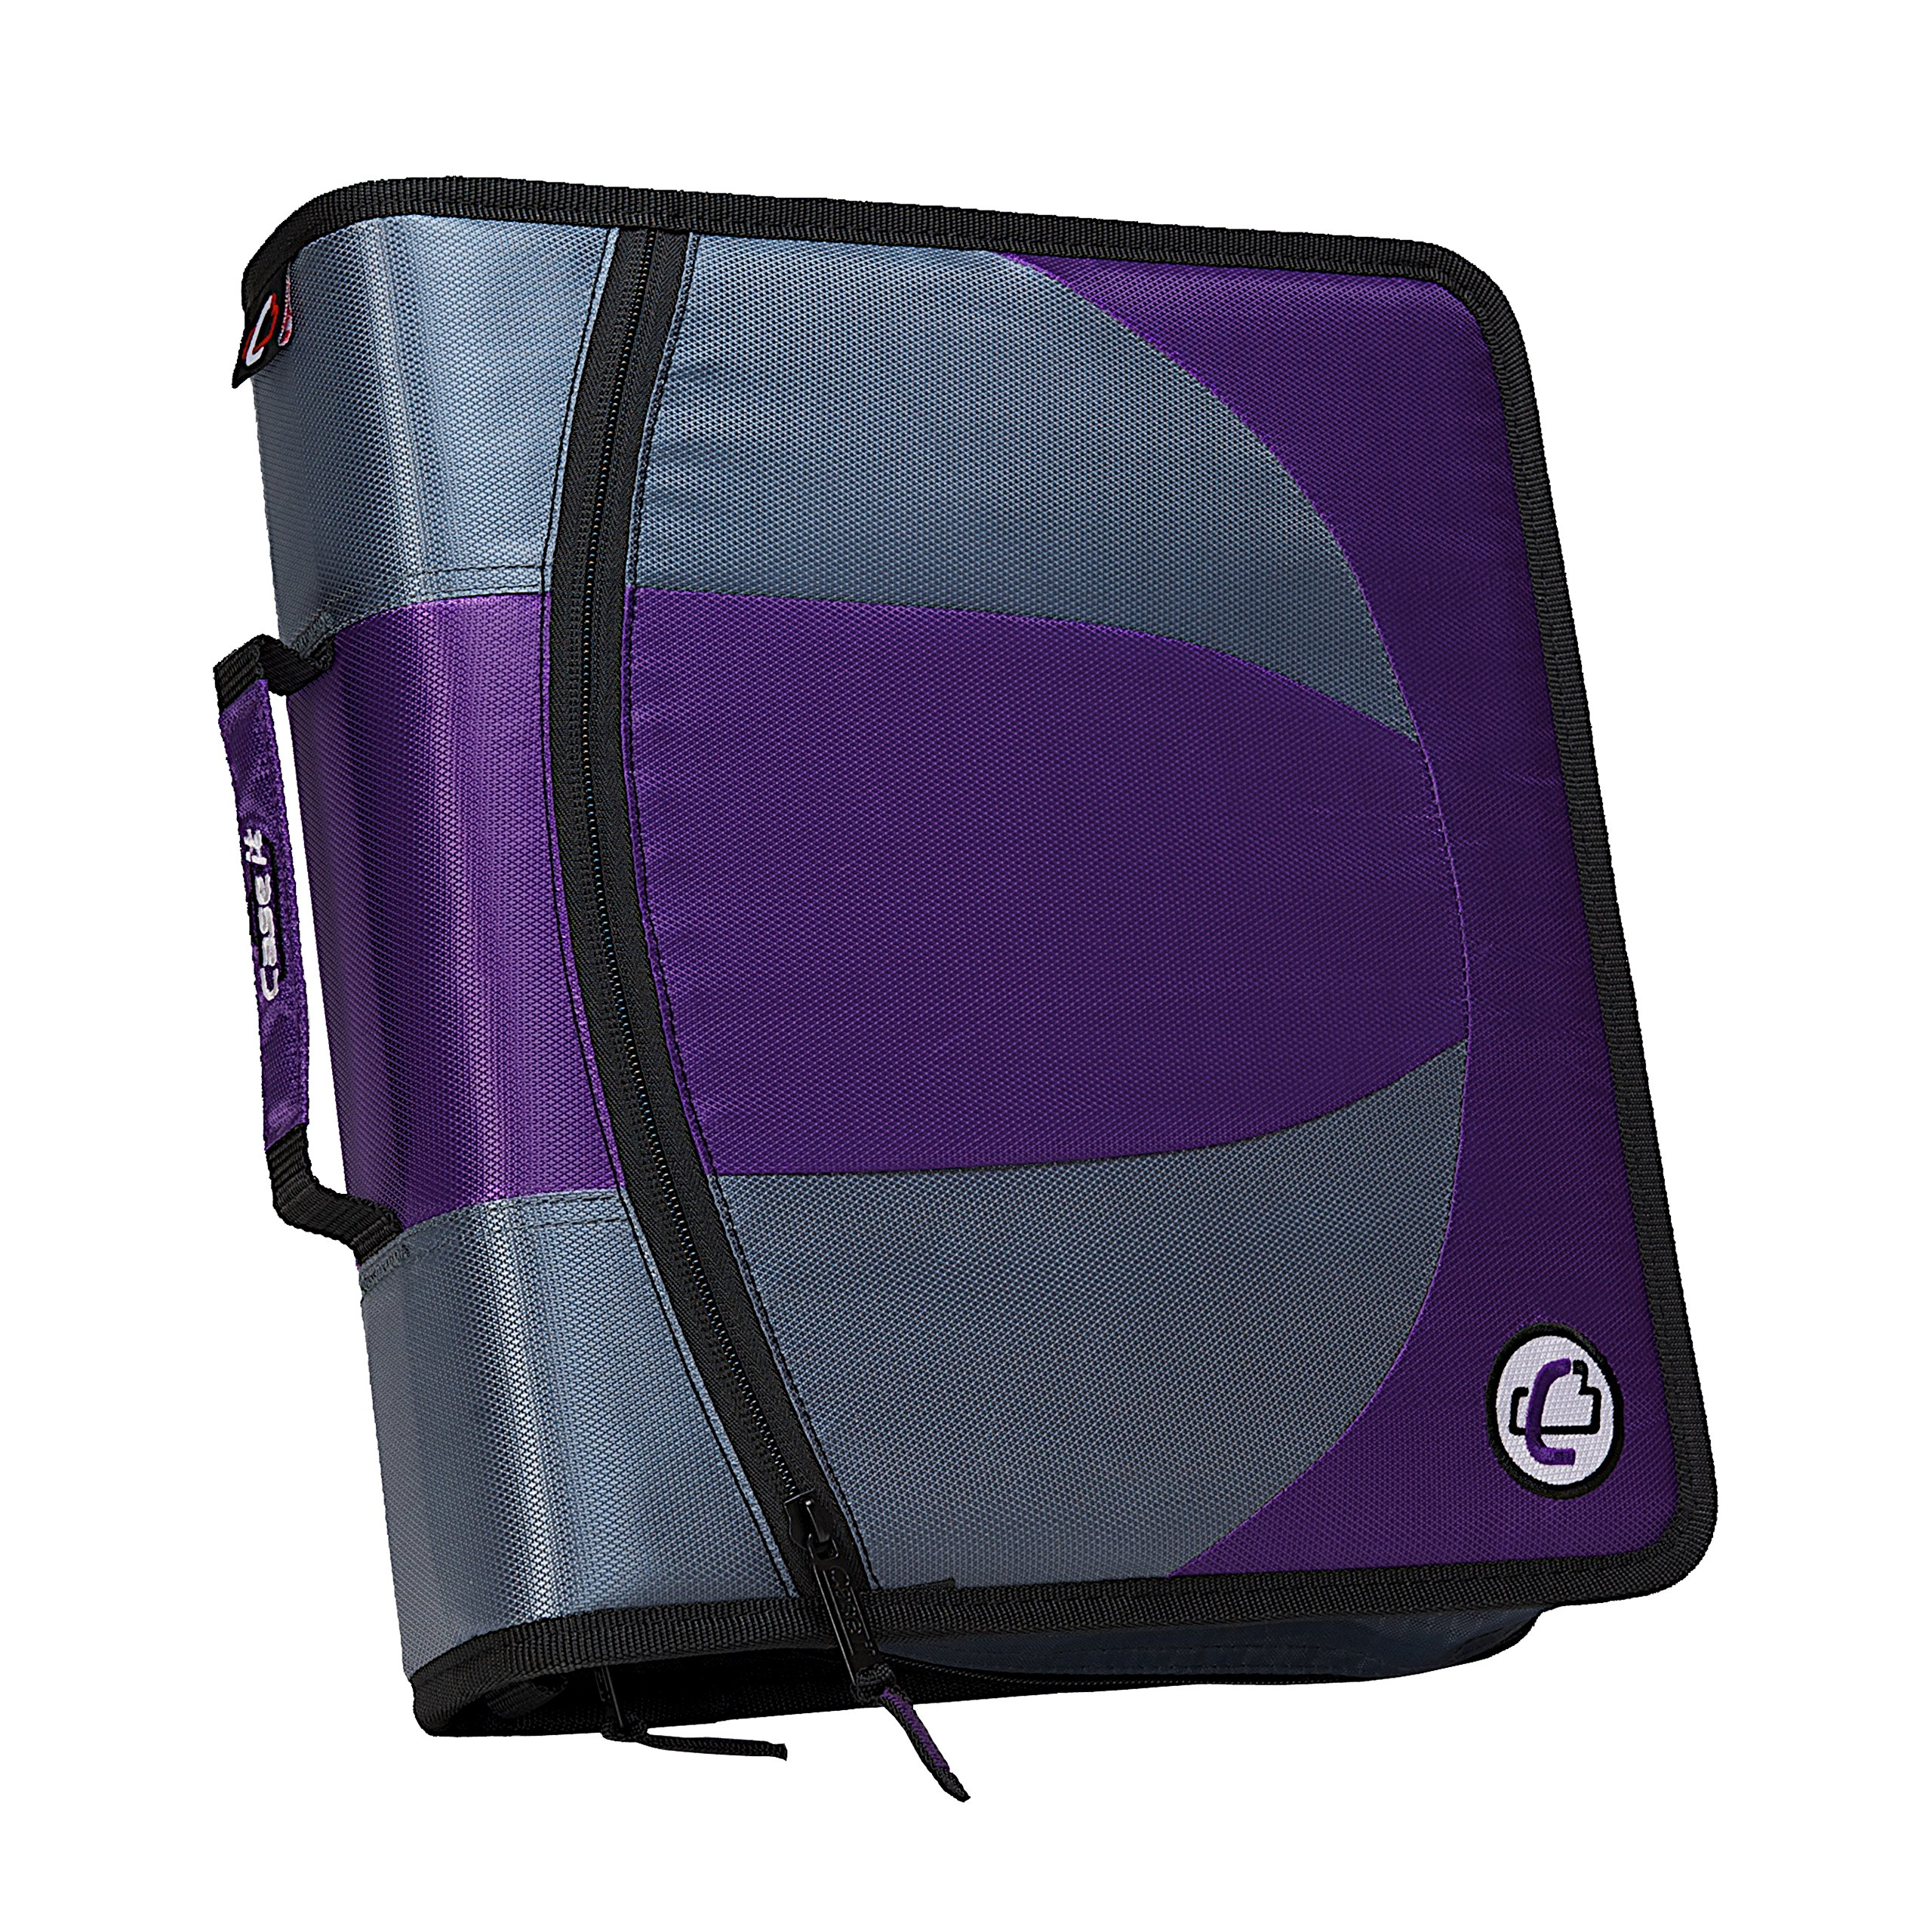 Case-it Dual 2-in-1 Zipper D-Ring Binder, 2 Sets of 1.5-Inch Rings with Pencil Pouch, Purple, DUAL-101-PUR-18